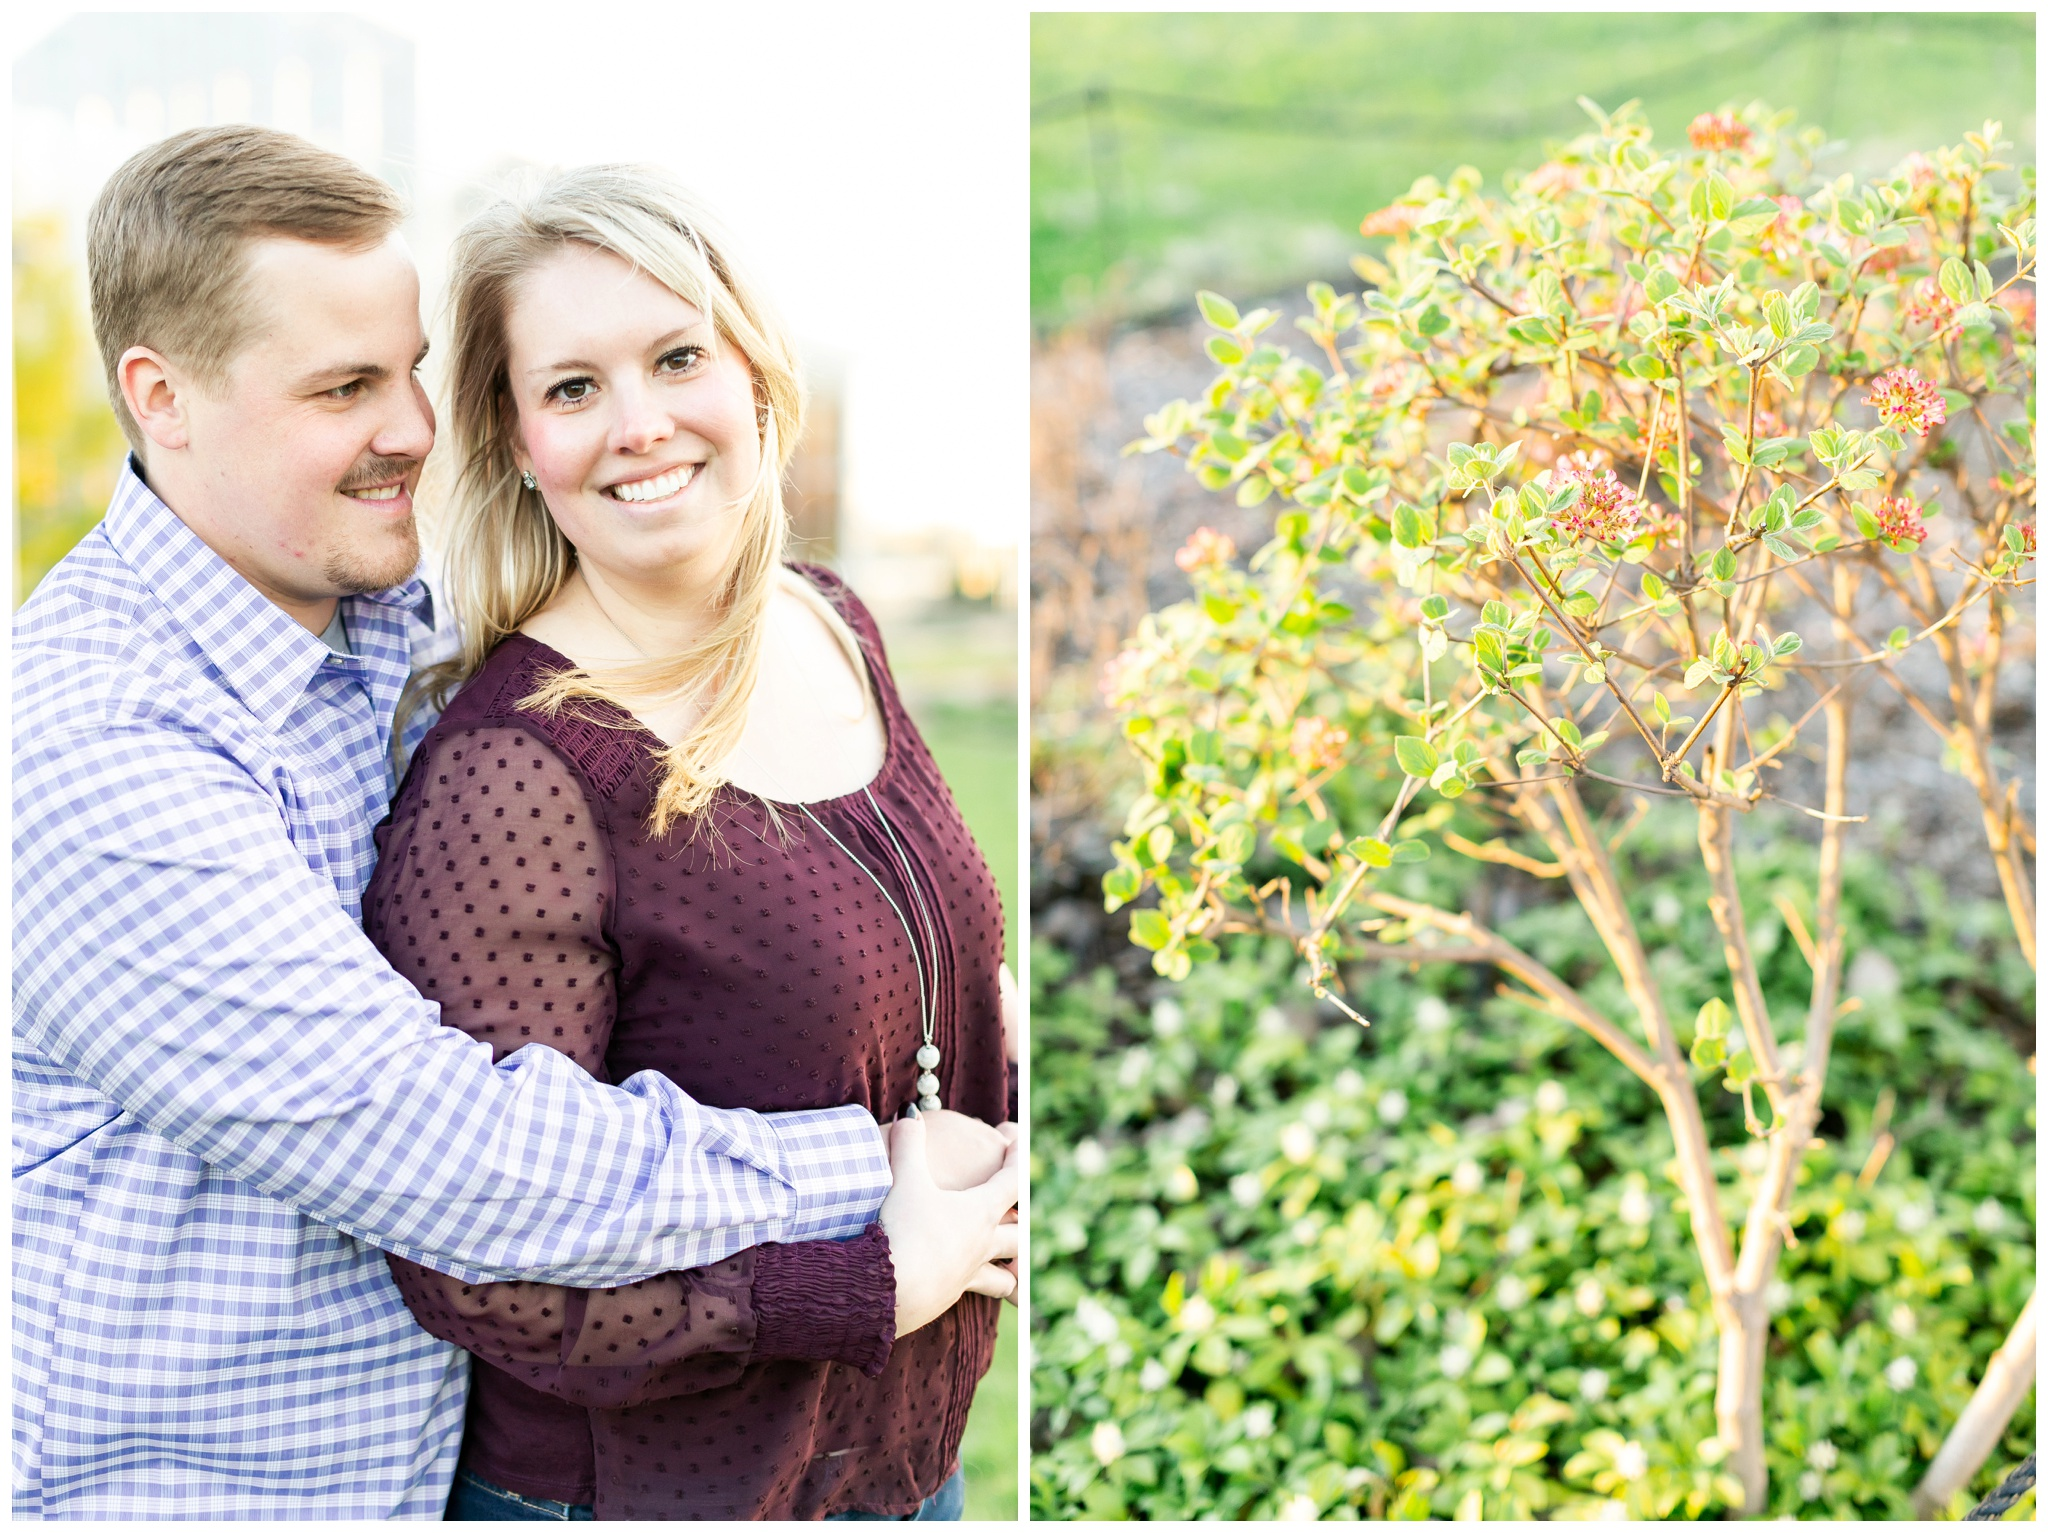 nicholas_conservatory_engagement_session_rockford_illinois_caynay_photo_3003.jpg